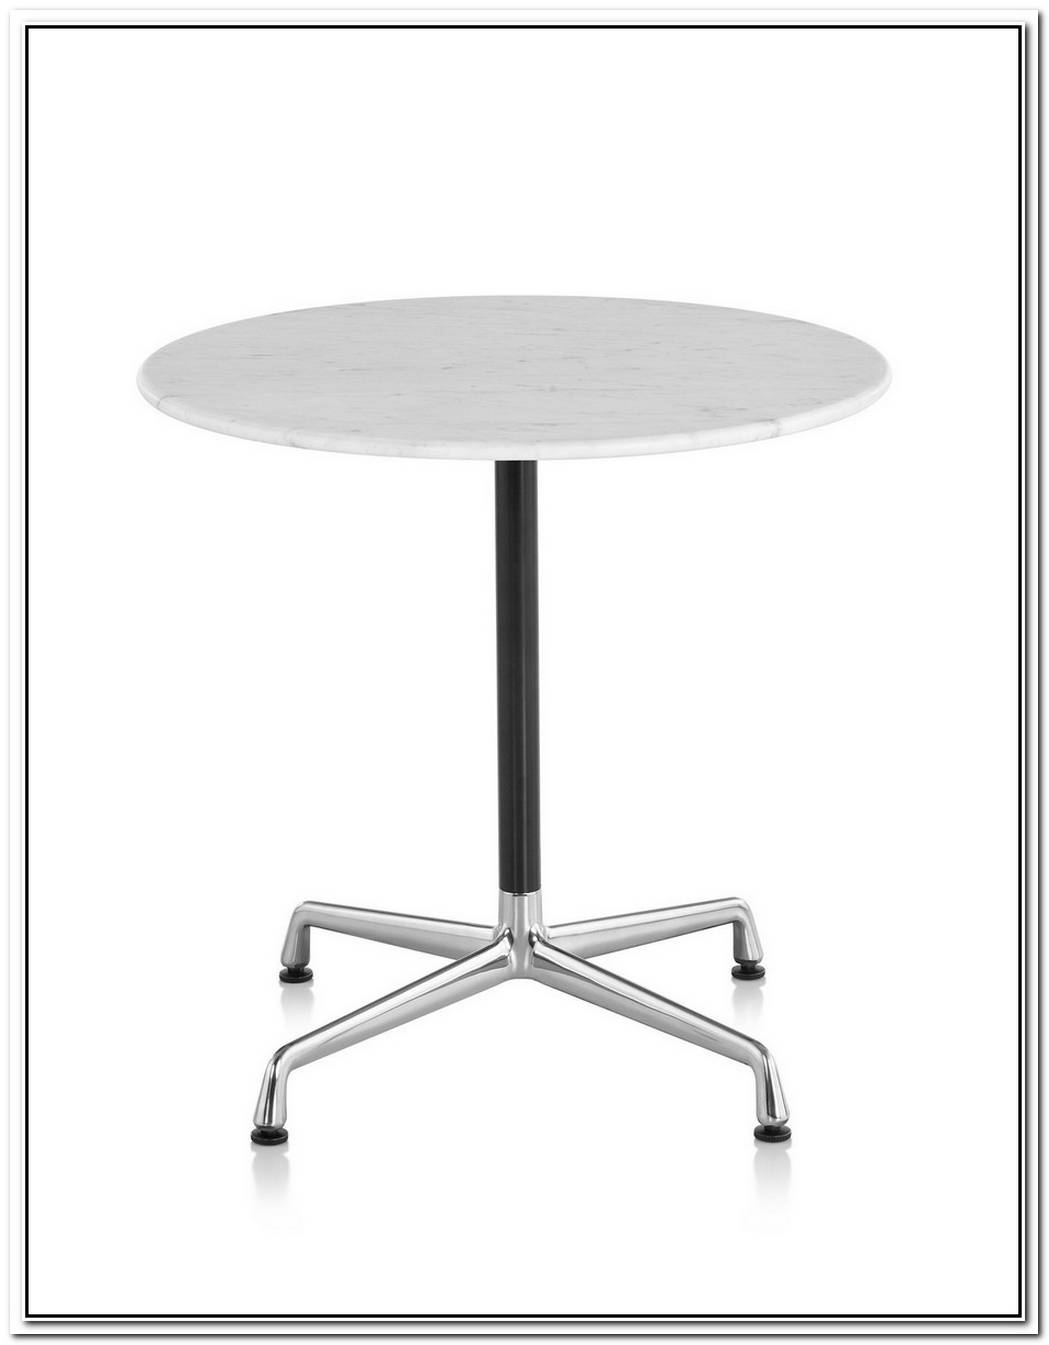 The Elegant Eames%C2%AE Laminate Round Table